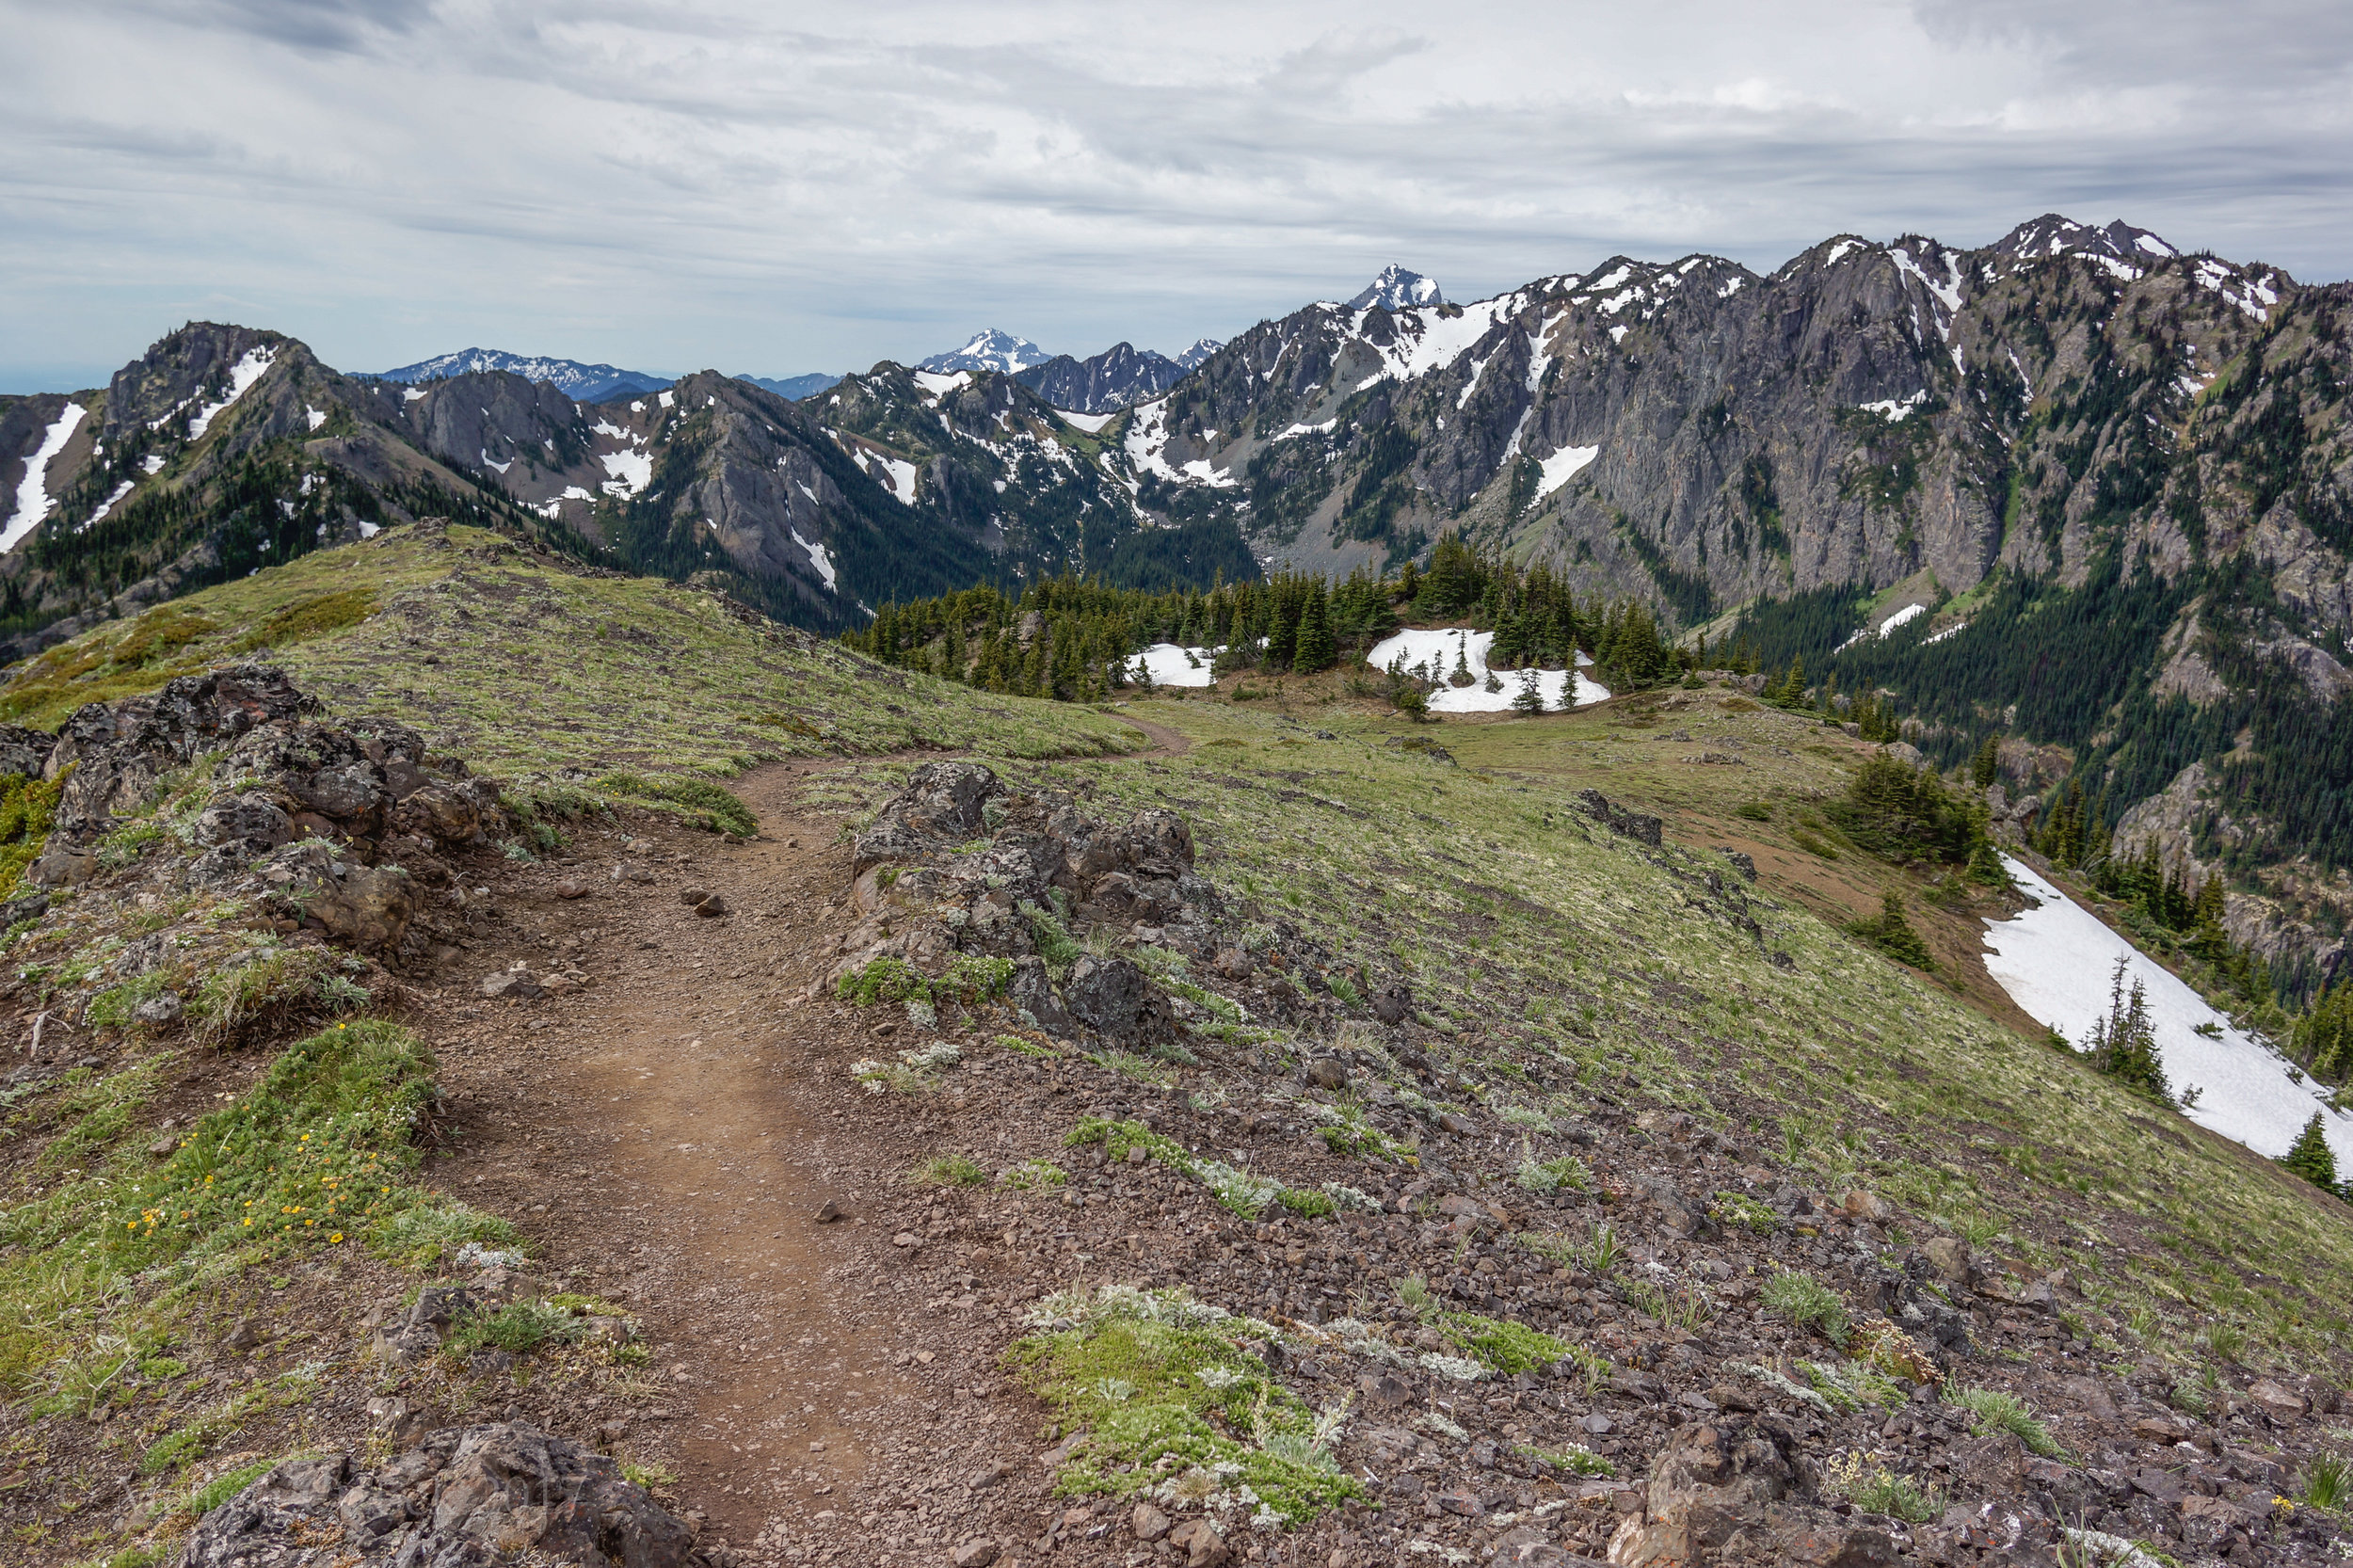 2. Mount Townsend